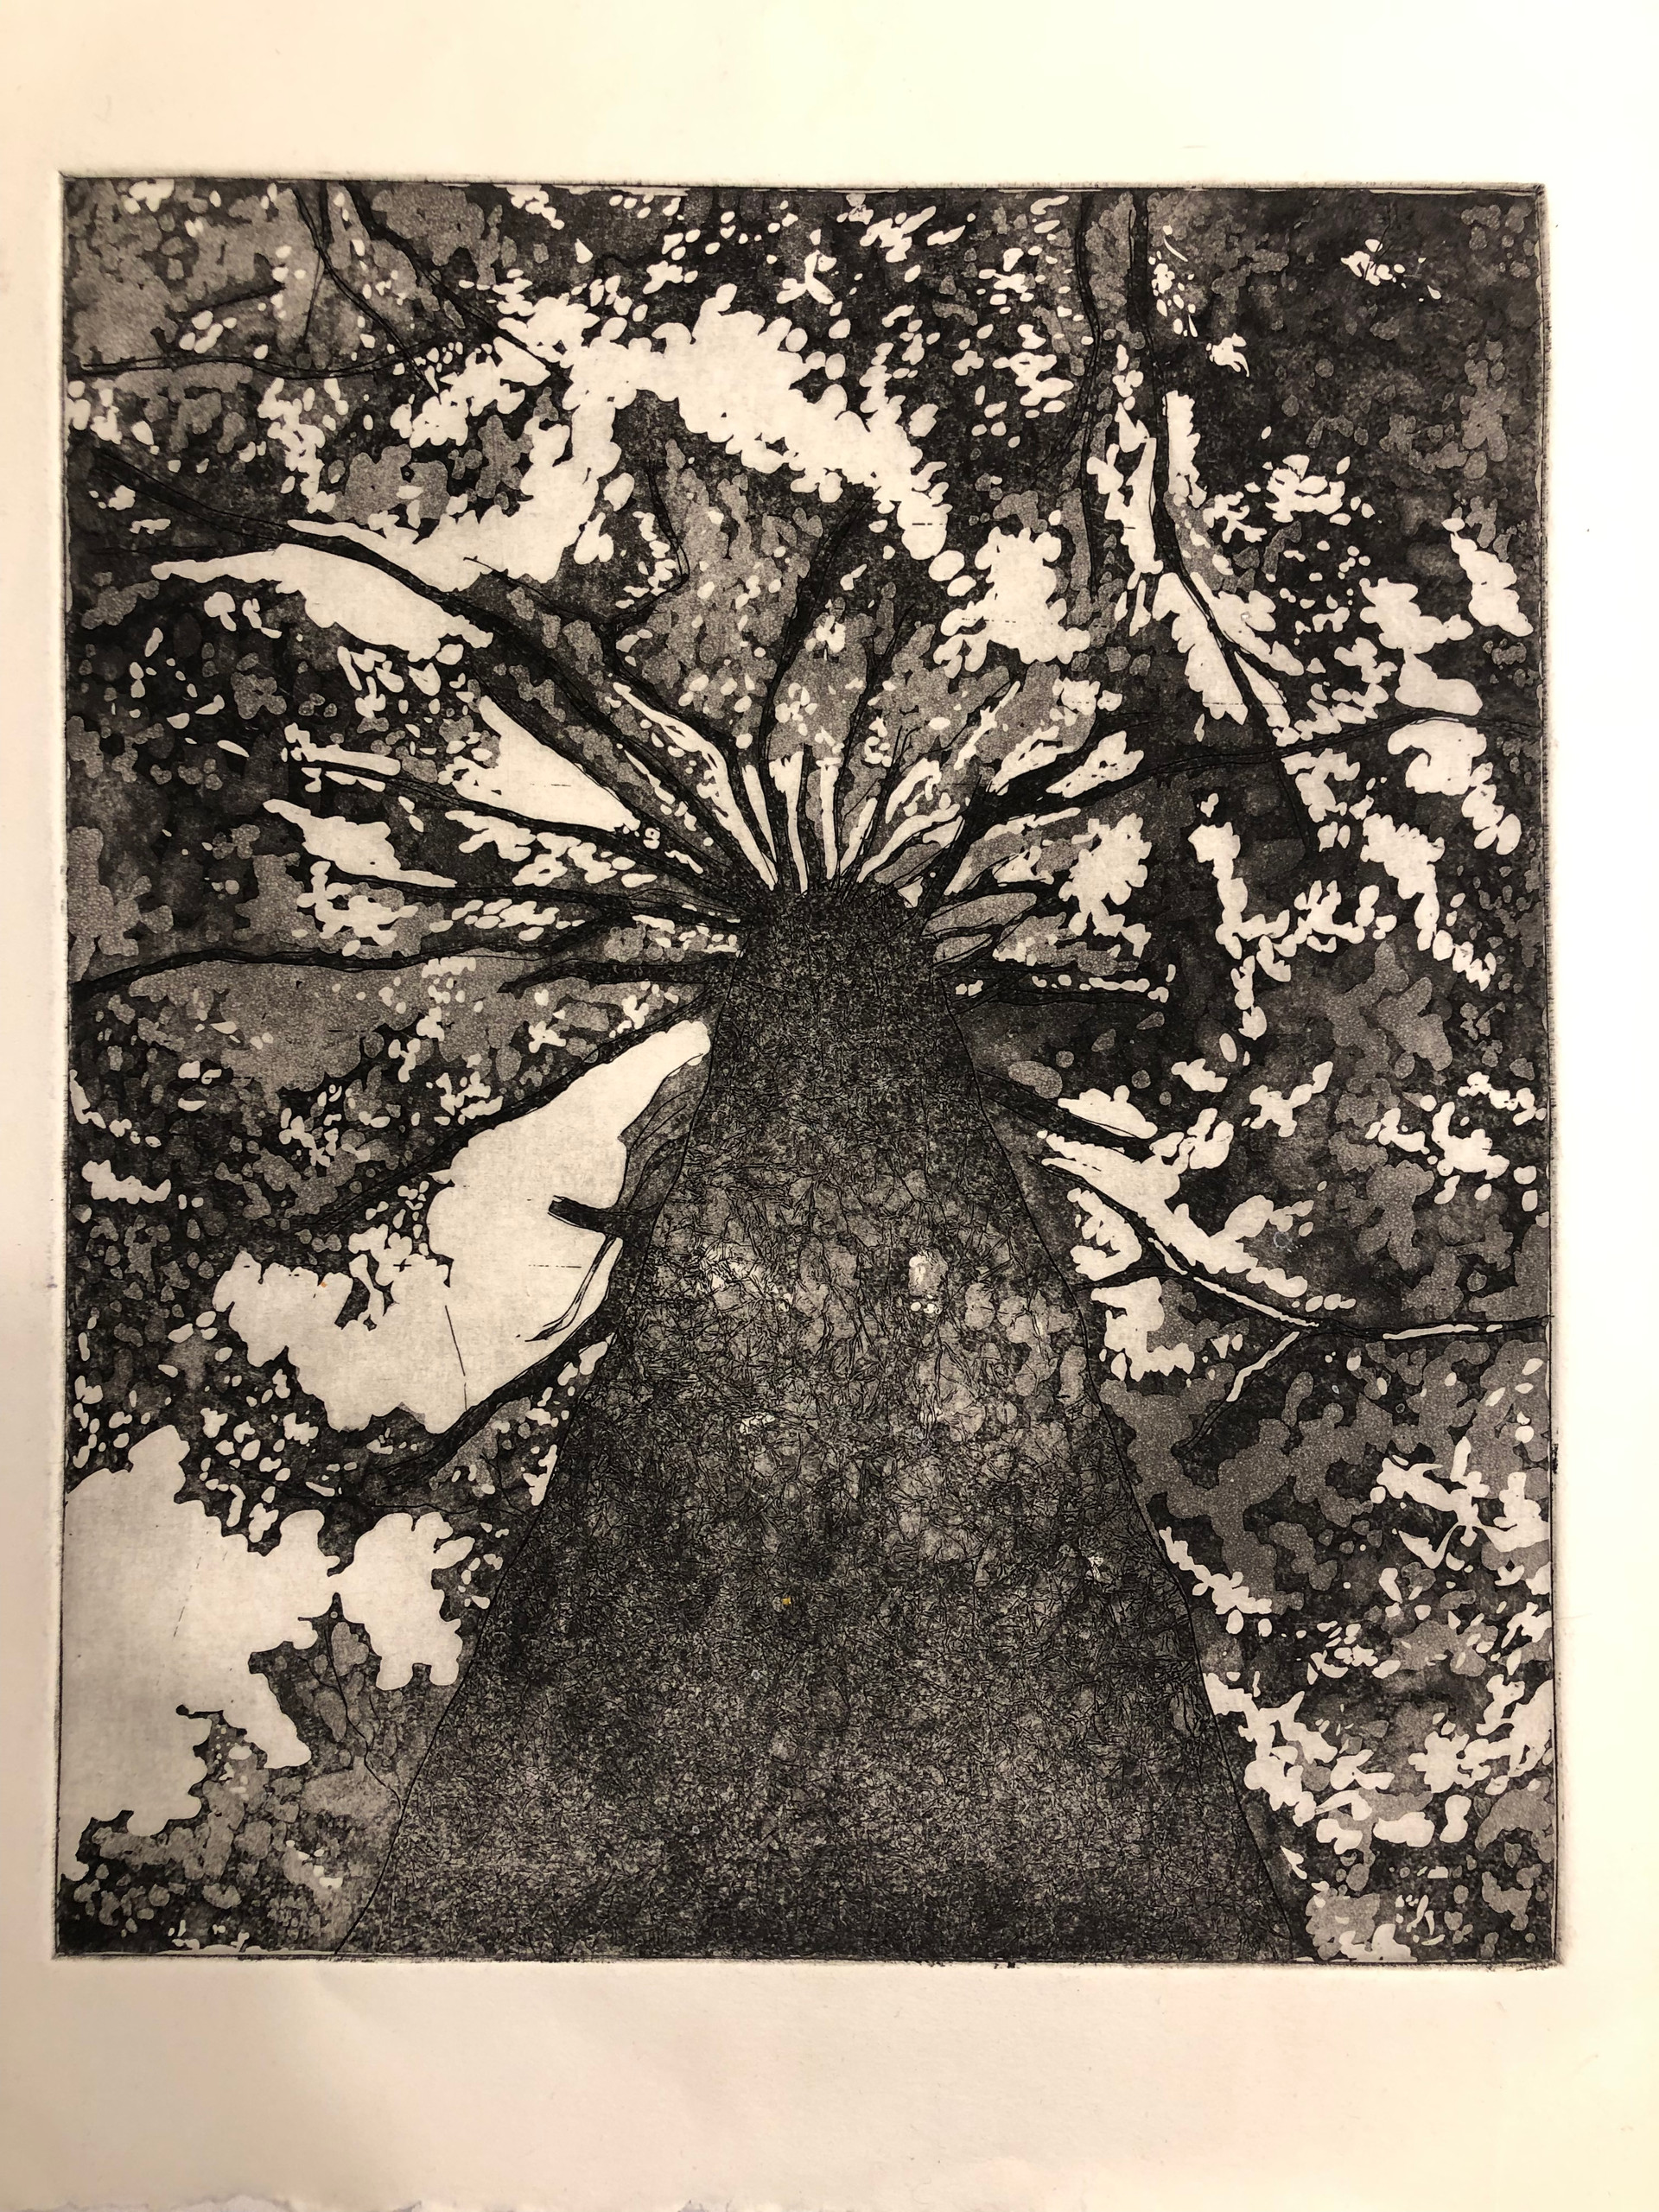 late summer. etched print. ink on cotton rag. 10x12 (print area).